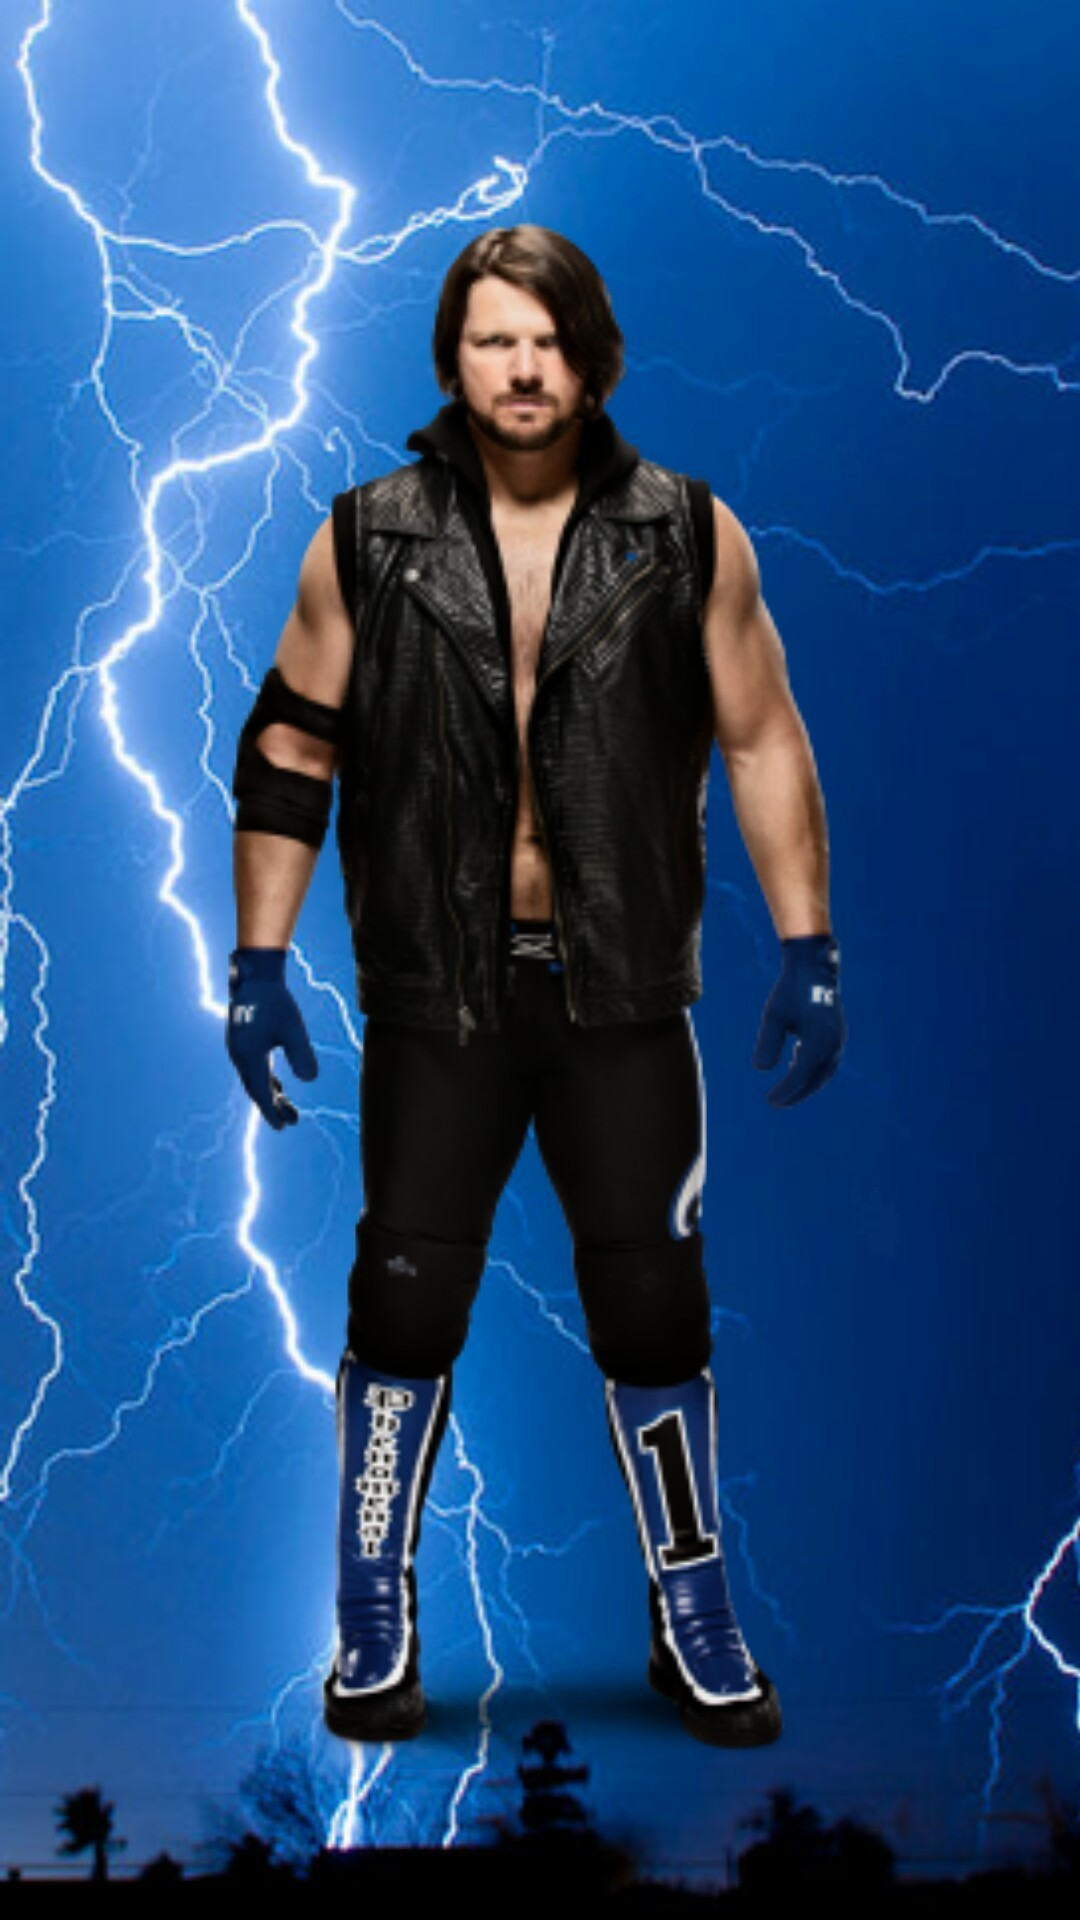 Blue Lightning Aesthetic 2382692 Hd Wallpaper Backgrounds Download